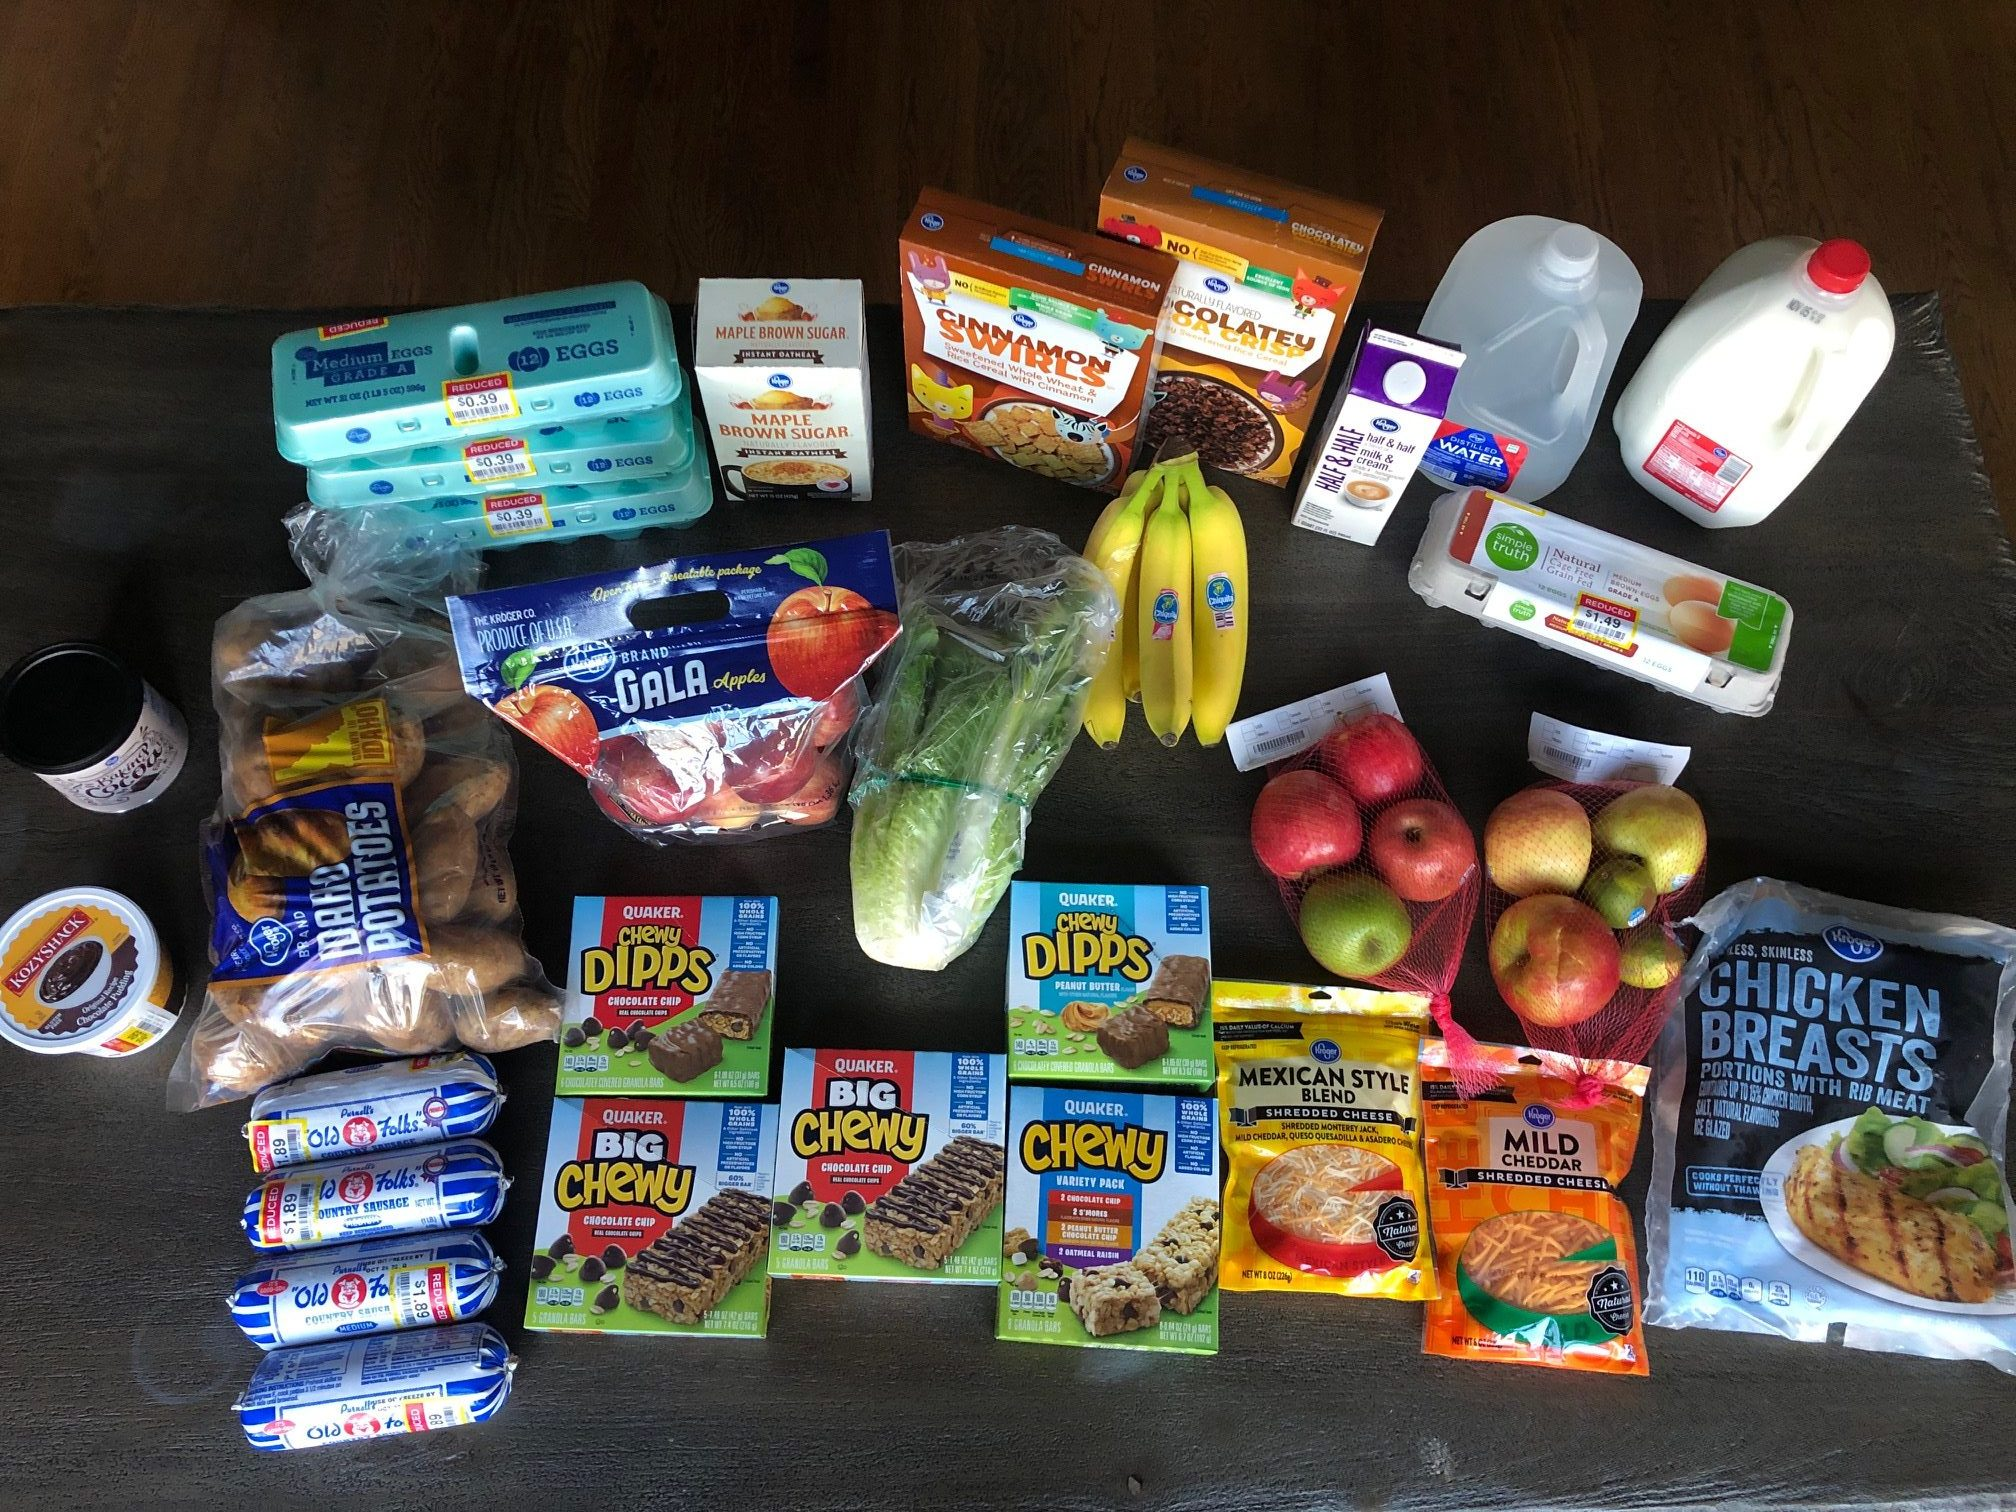 This week's $66.61 grocery shopping trips